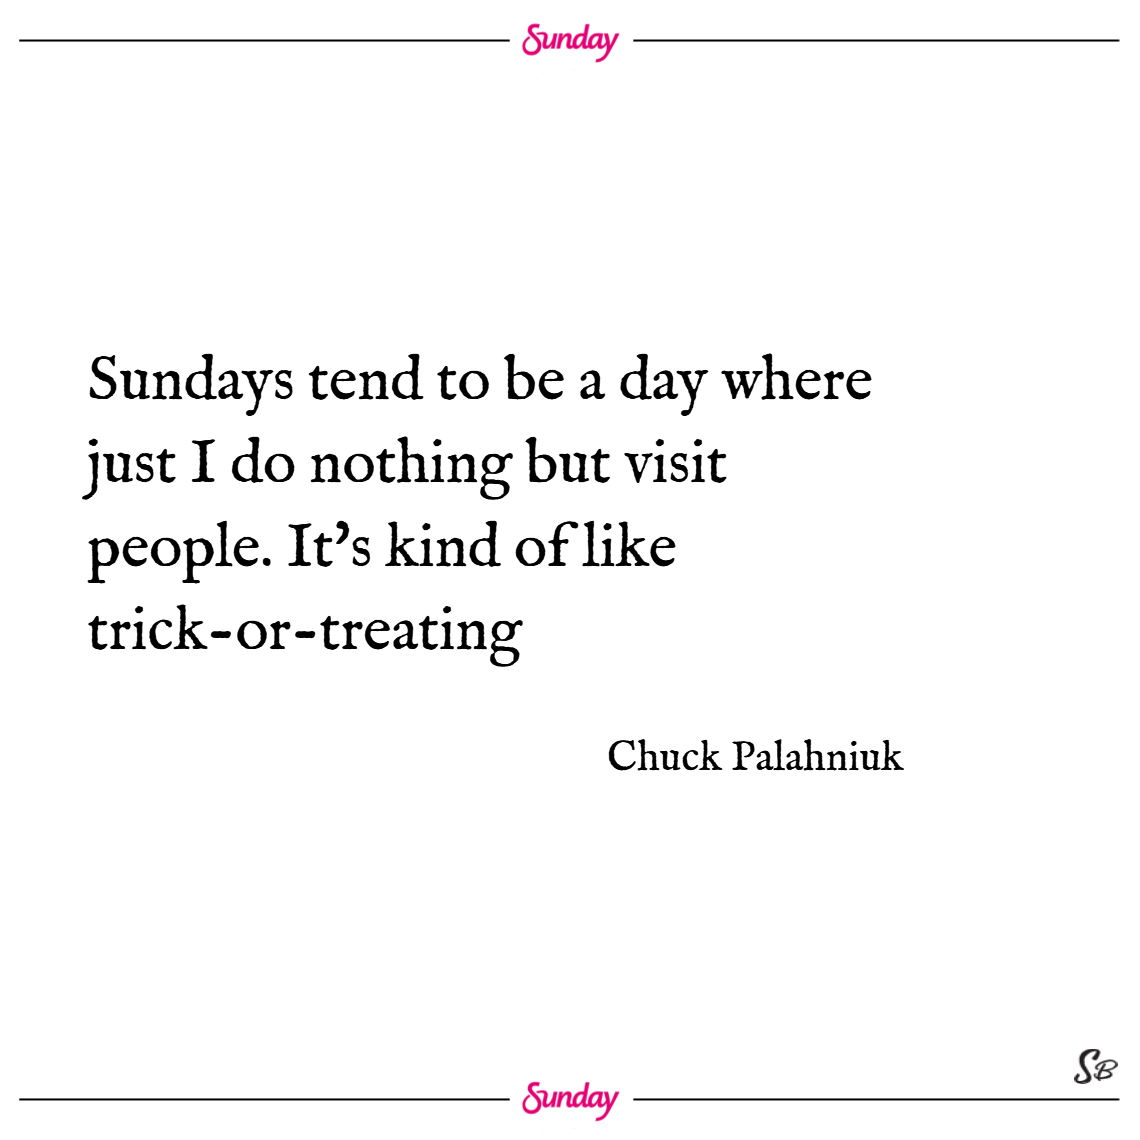 Sundays tend to be a day where just i do nothing but visit people. it's kind of like trick or treating. – chuck palahniuk